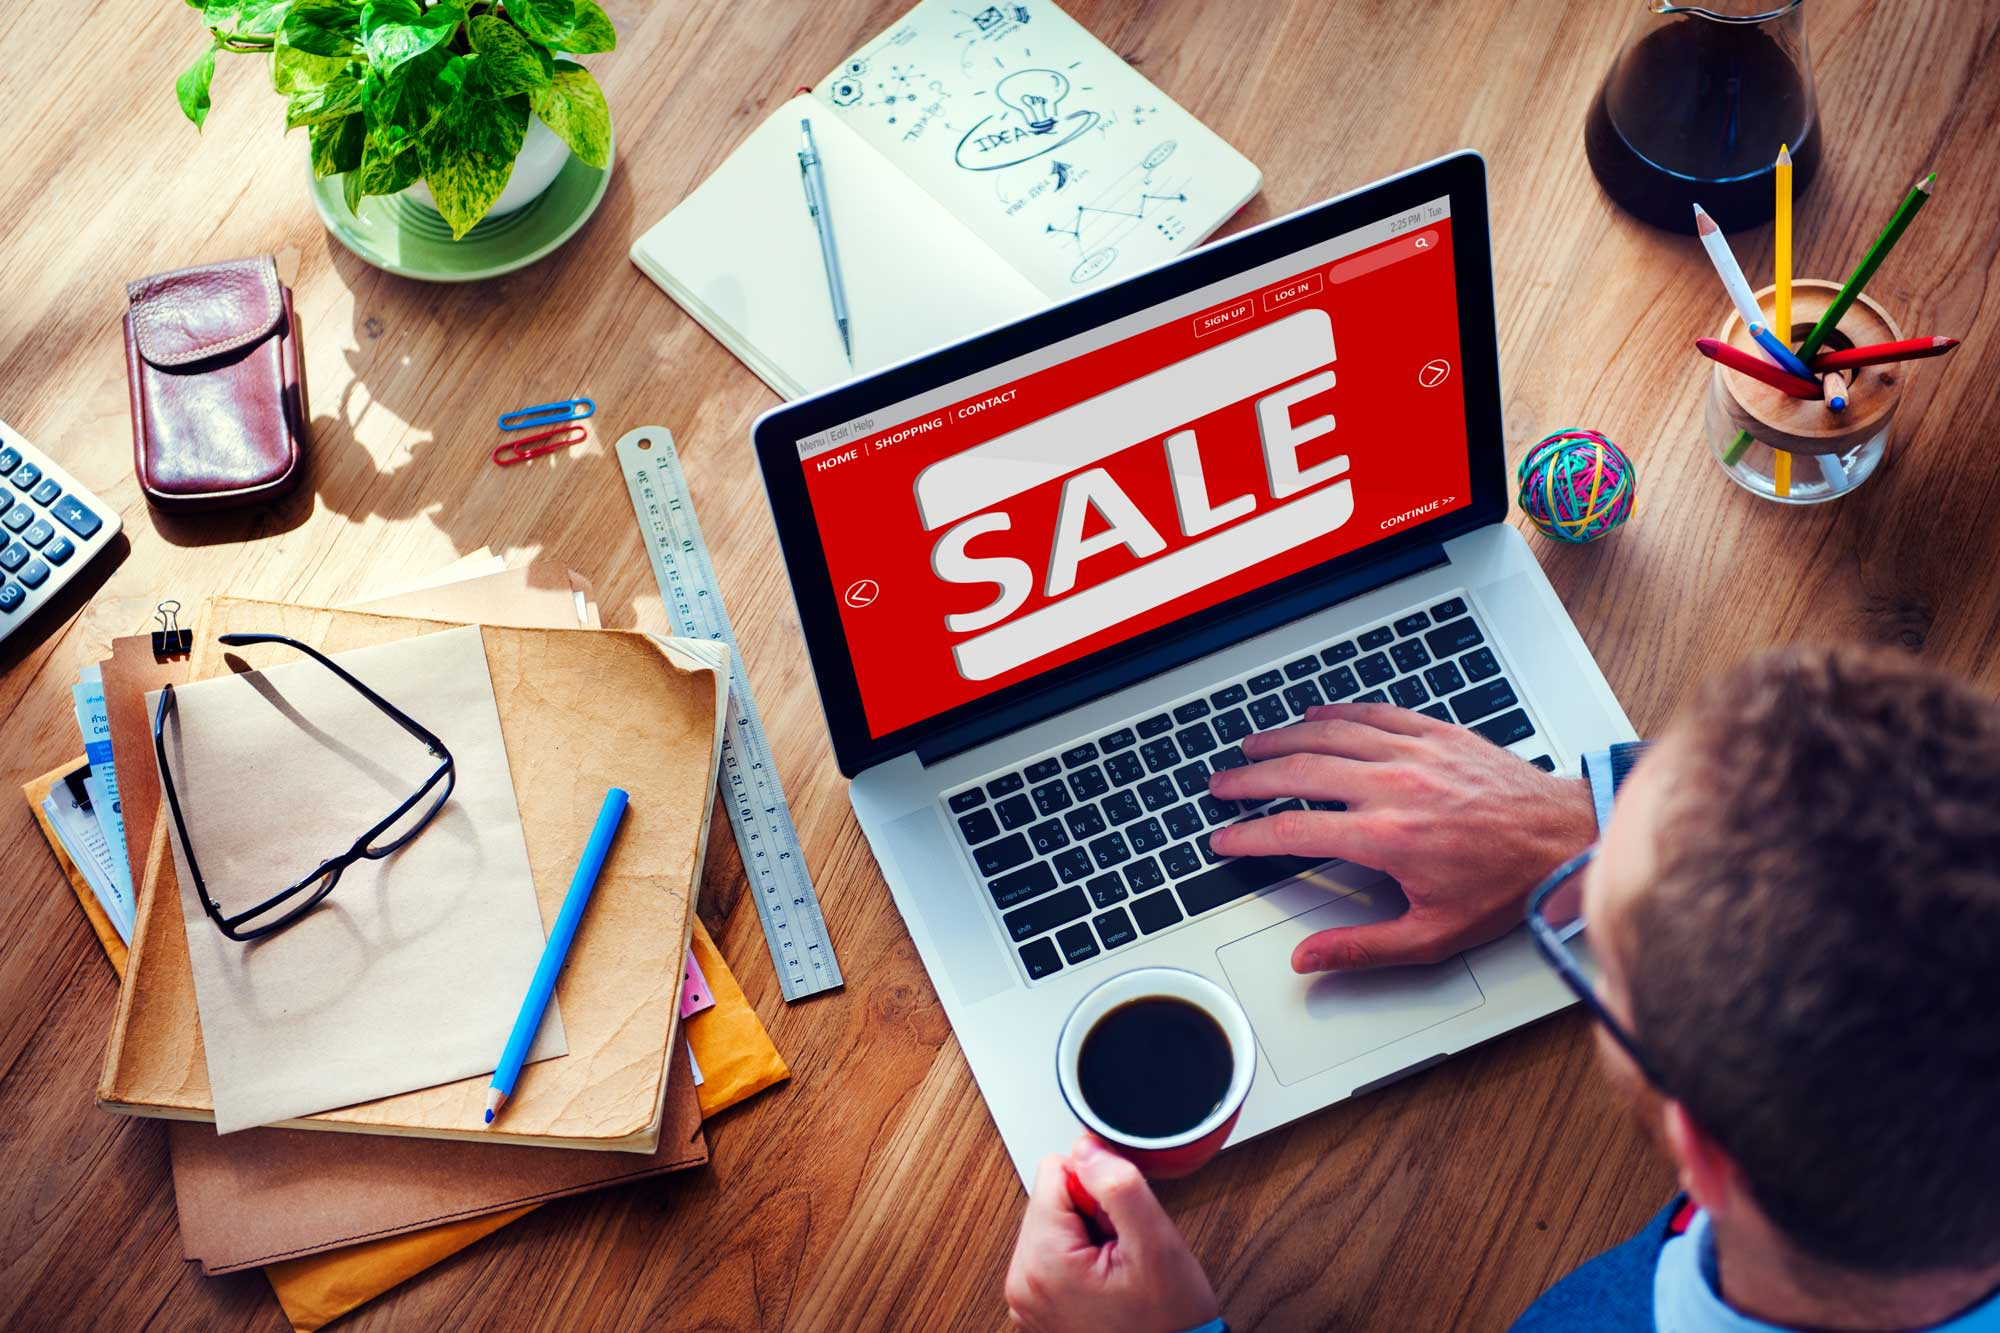 Online shopping scams: How to identify fake sites